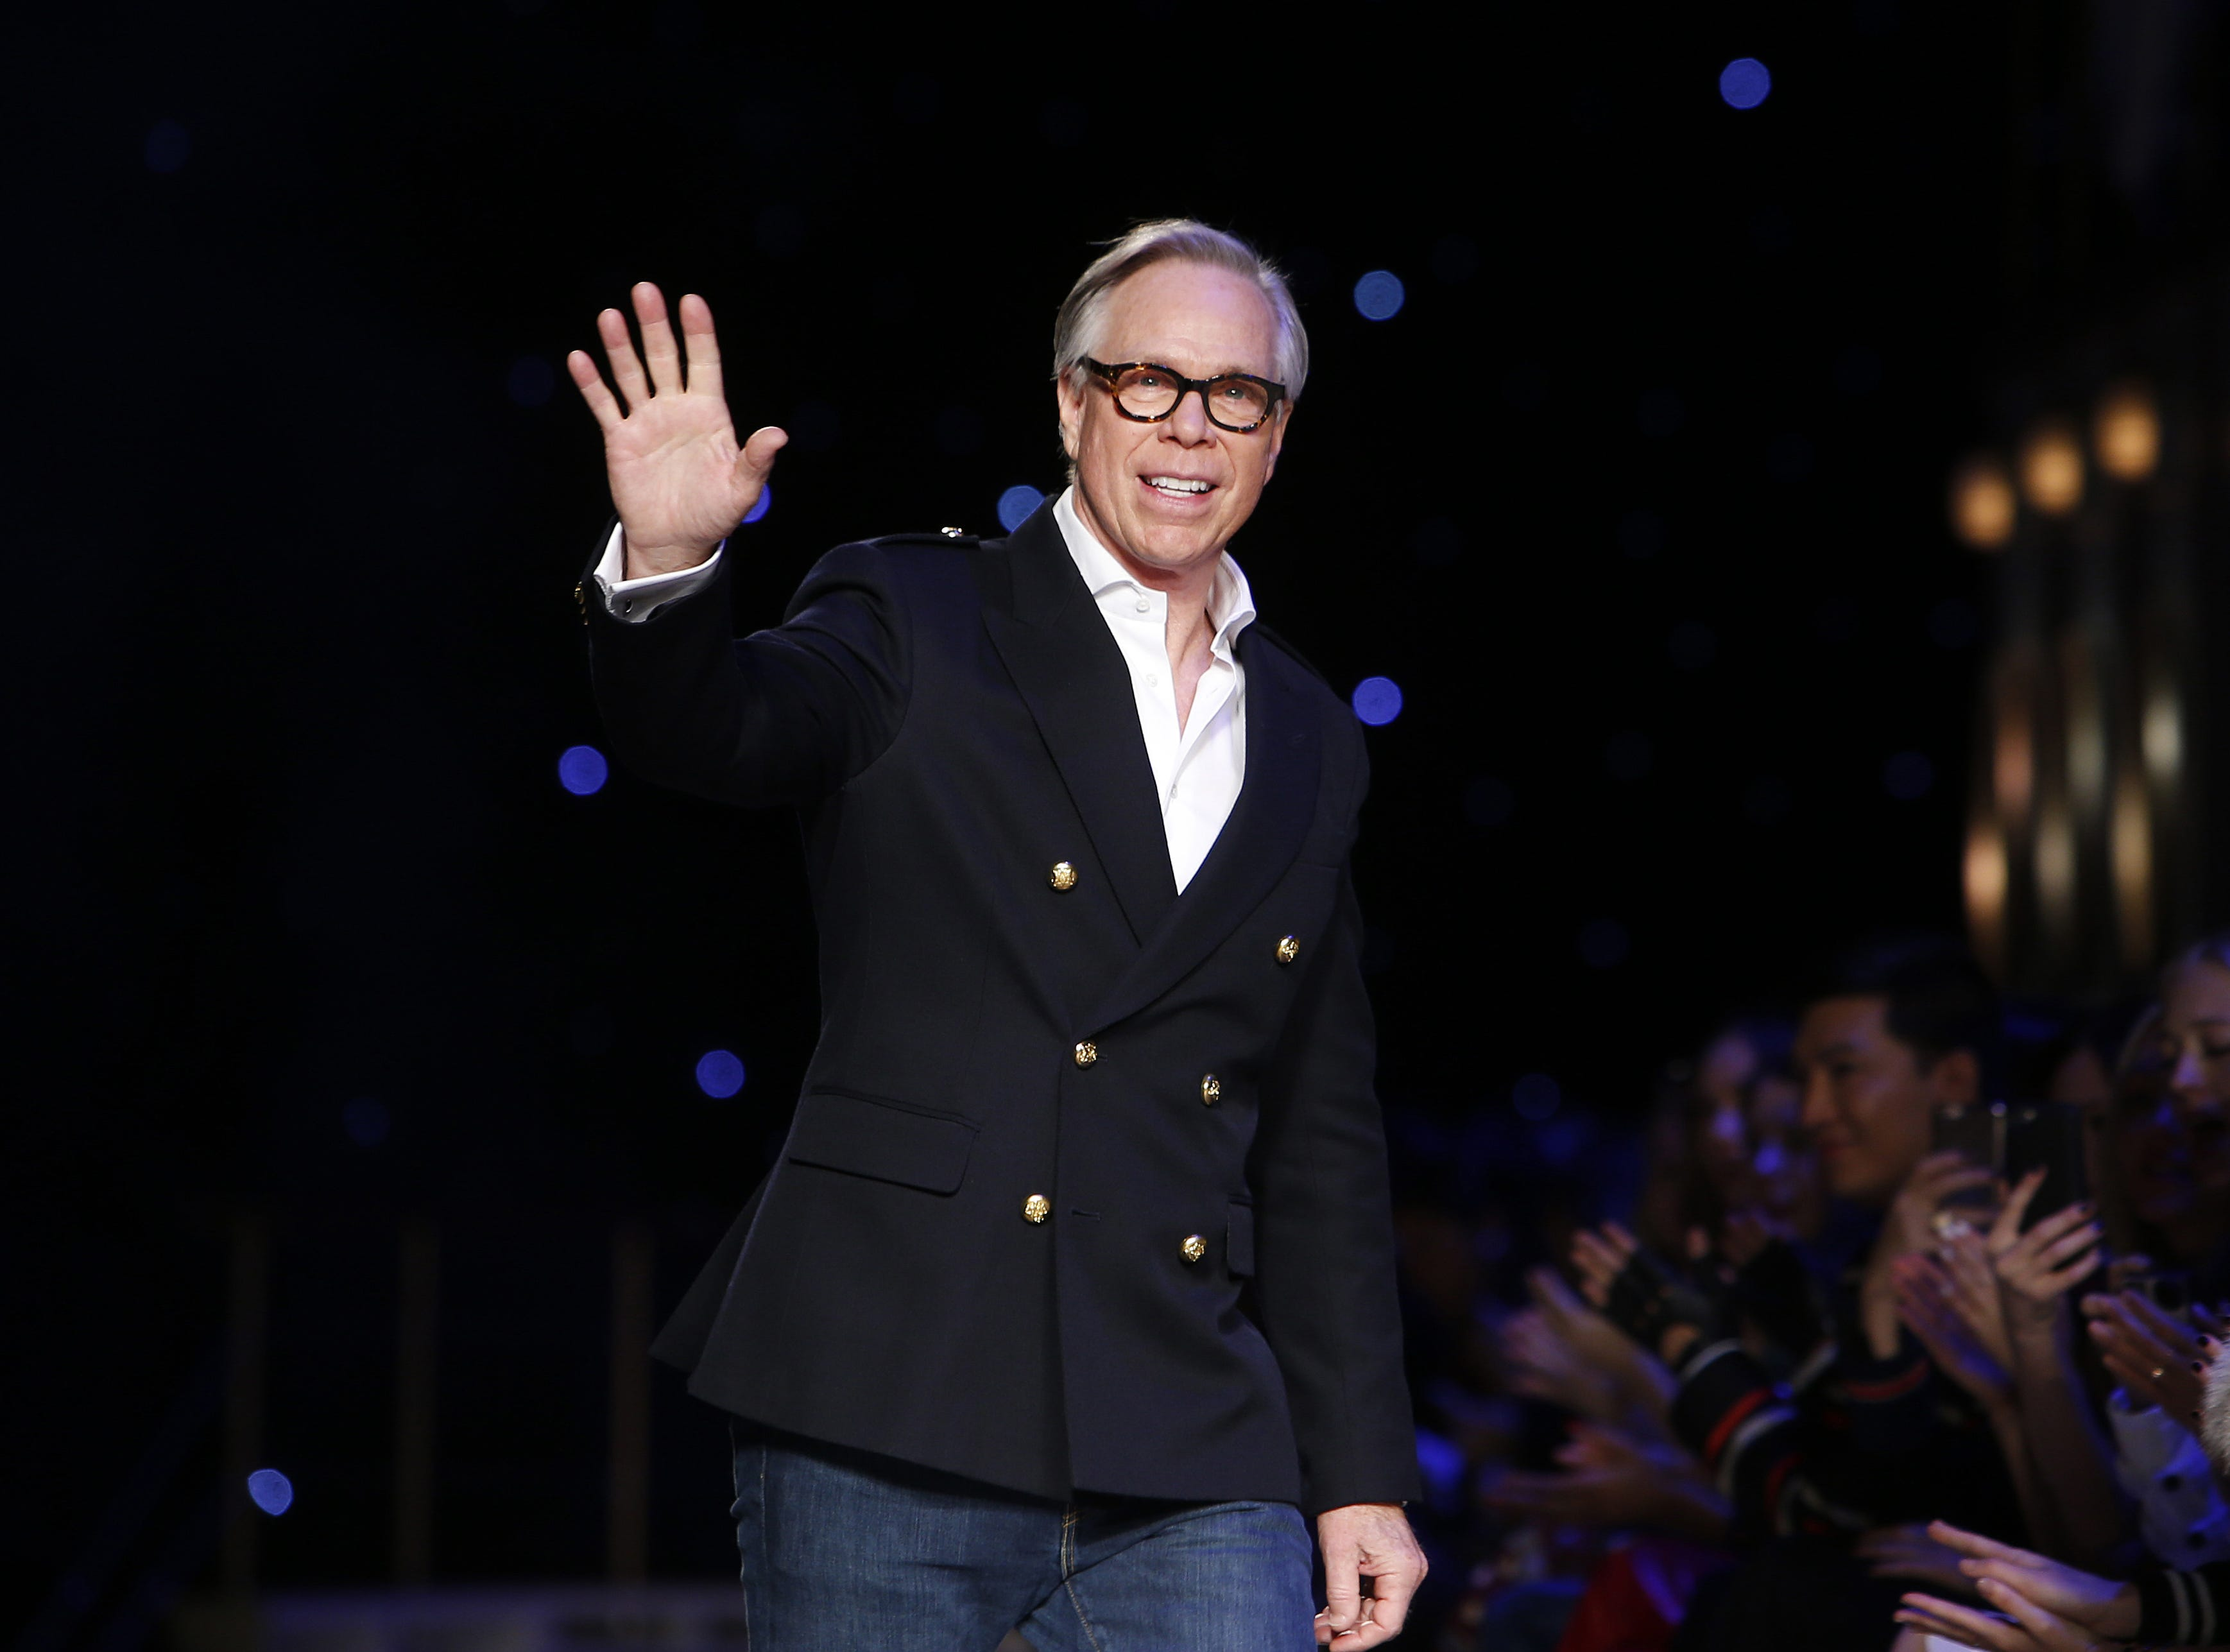 In a Monday, Feb. 15, 2016 file photo, designer Tommy Hilfiger acknowledges the audience after his Fall 2016 collection show during Fashion Week, in New York. Hilfiger was born in Elmira.